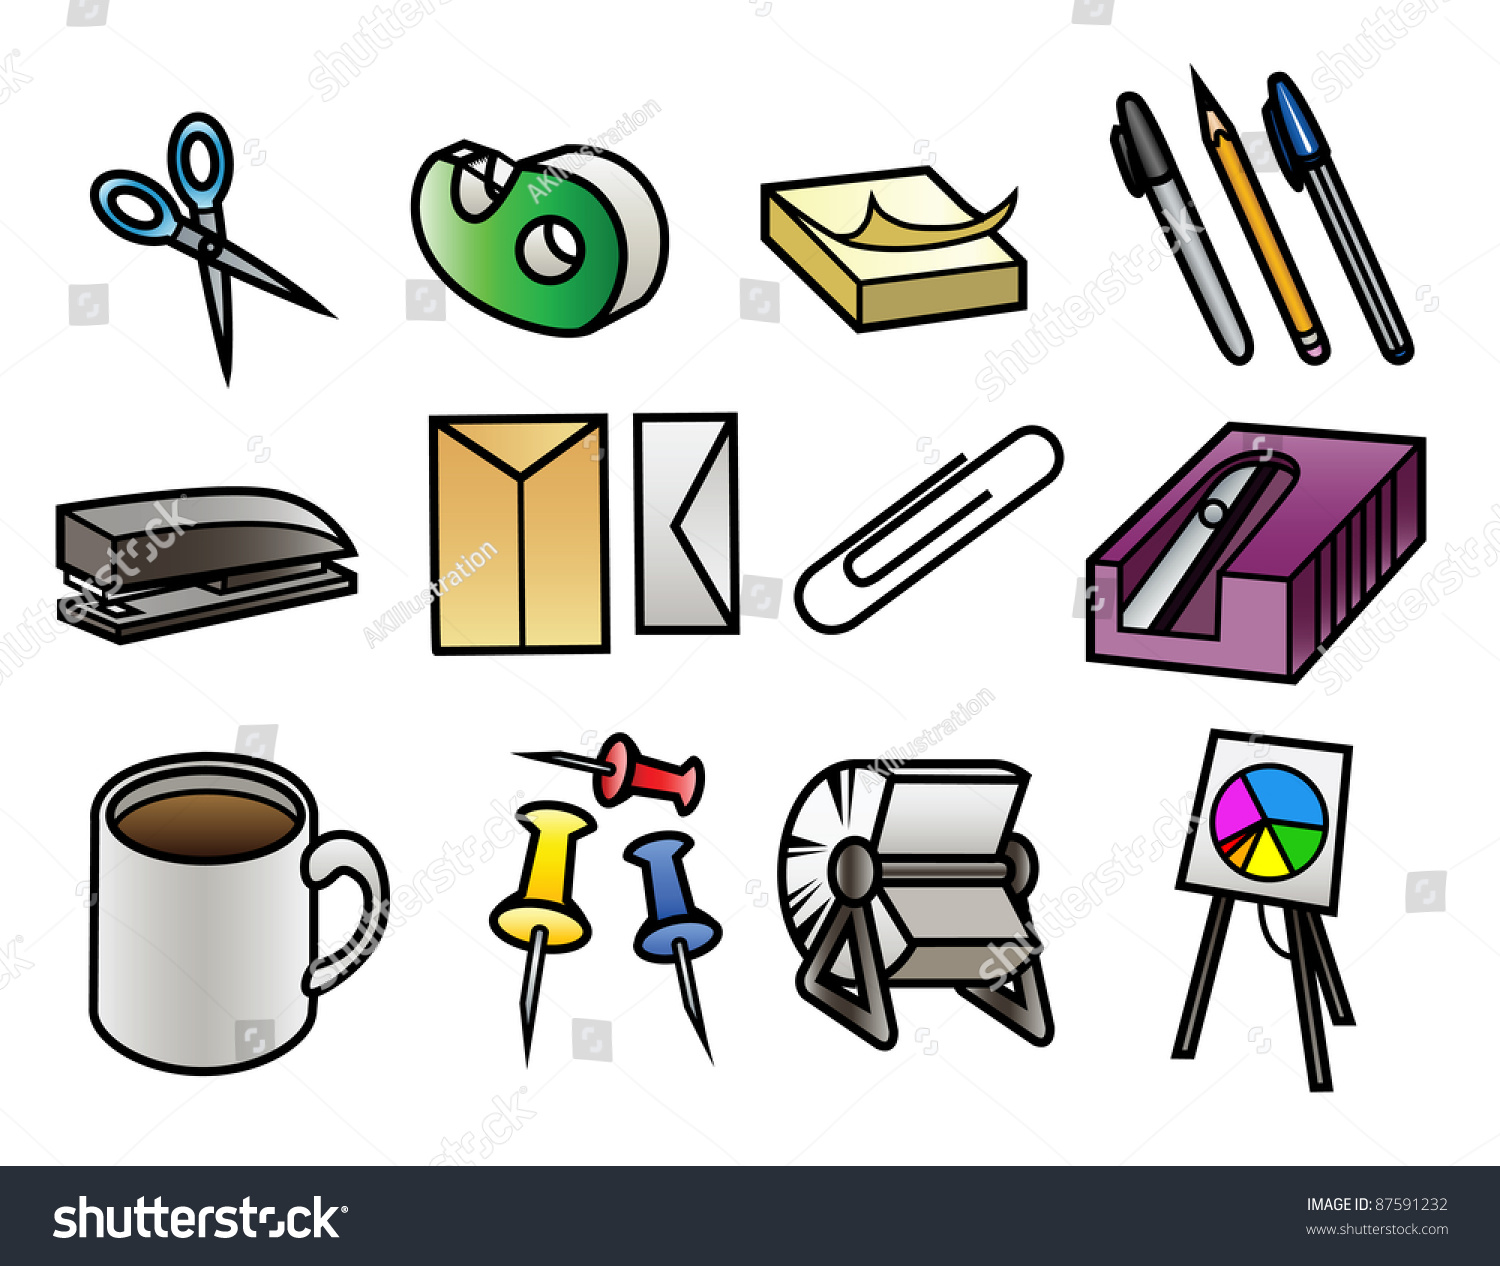 free office equipment clipart - photo #28